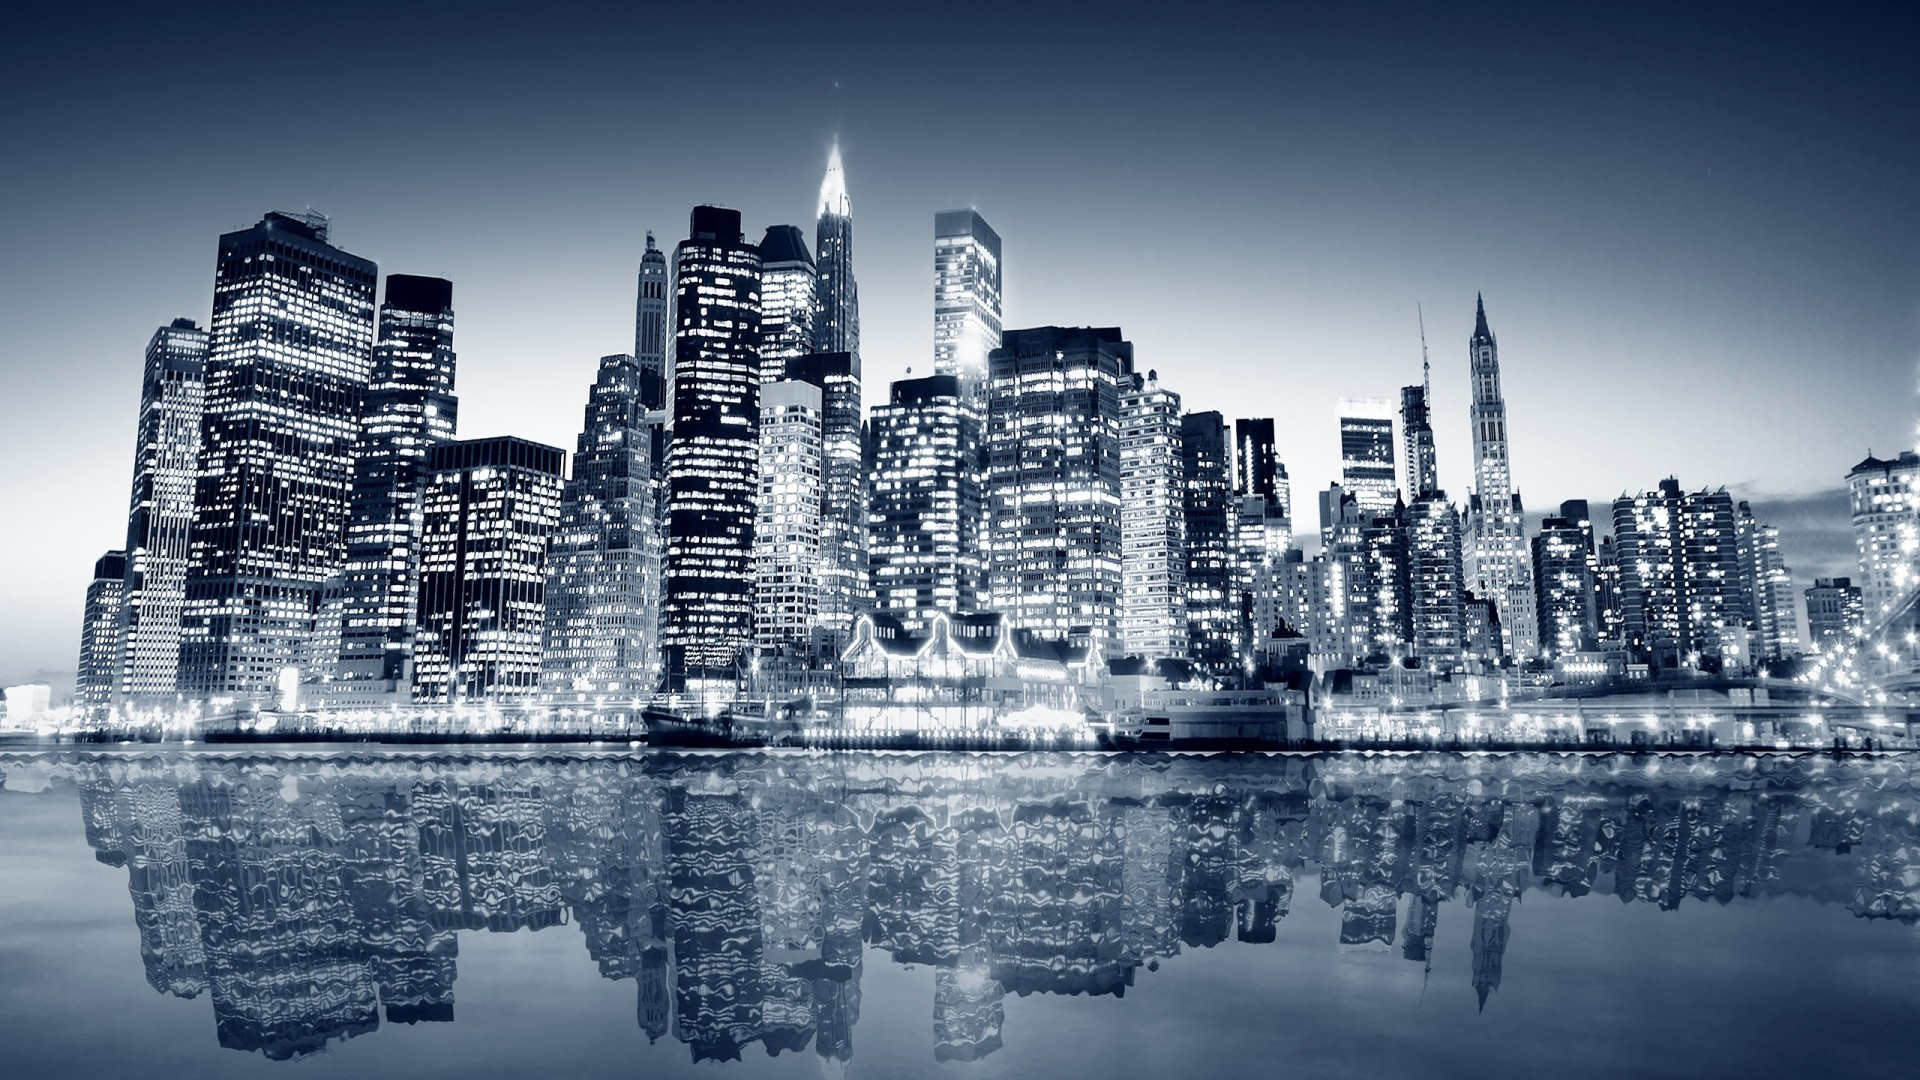 Hd wallpaper new - Cool Pictures New York City Hd Wallpaper Of City Hdwallpaper2013 Com